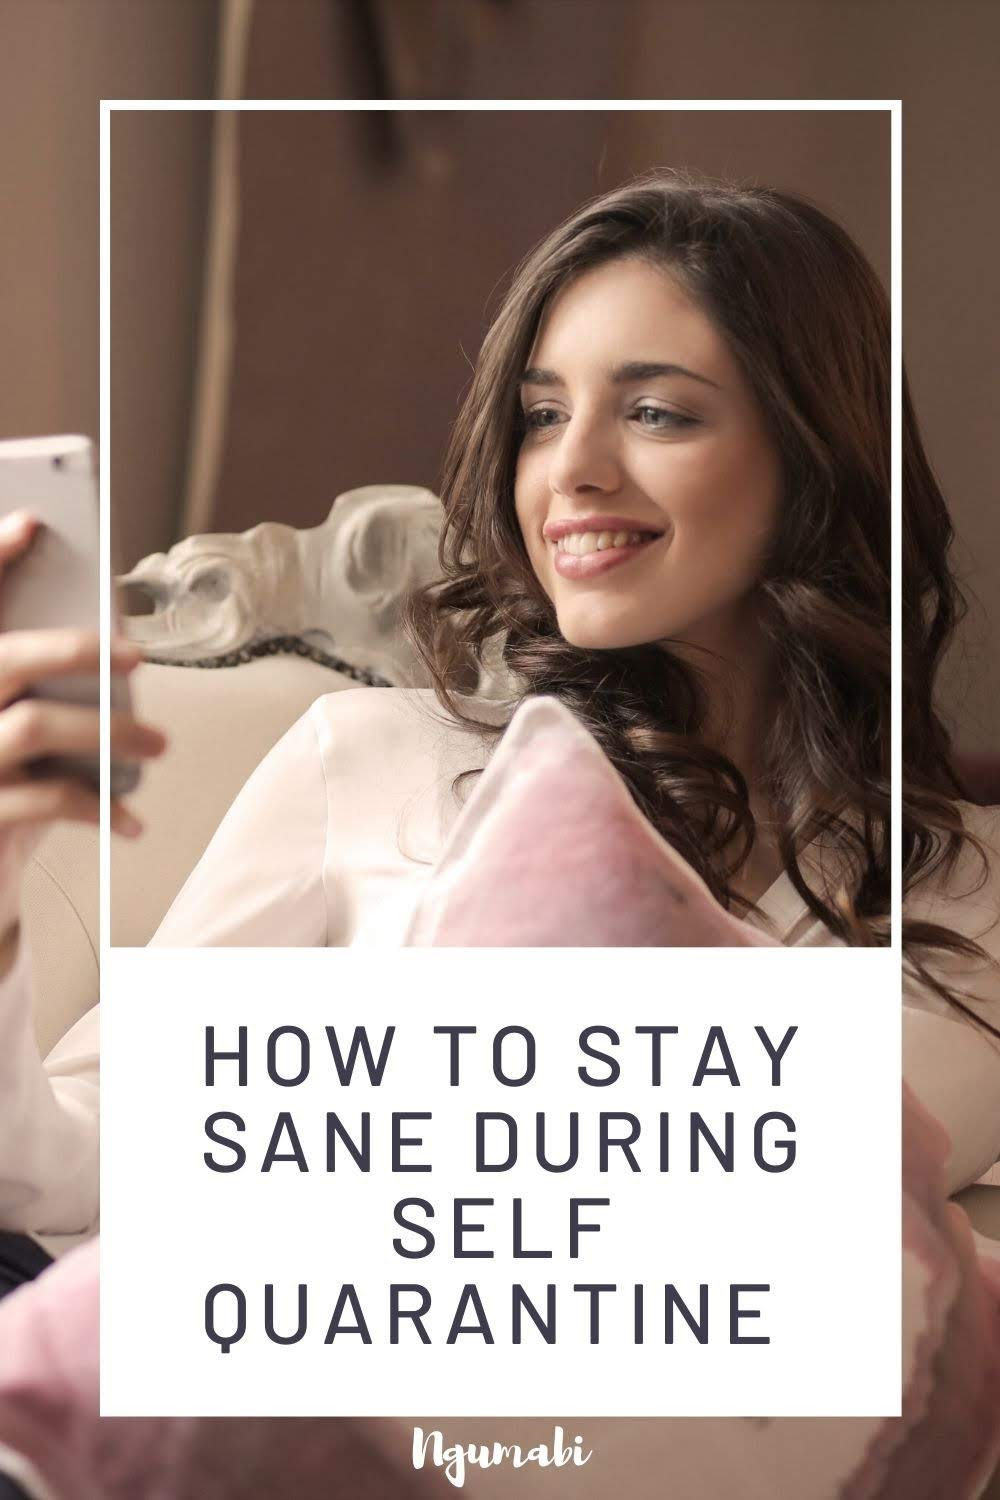 How To Stay Sane During Self Quarantine